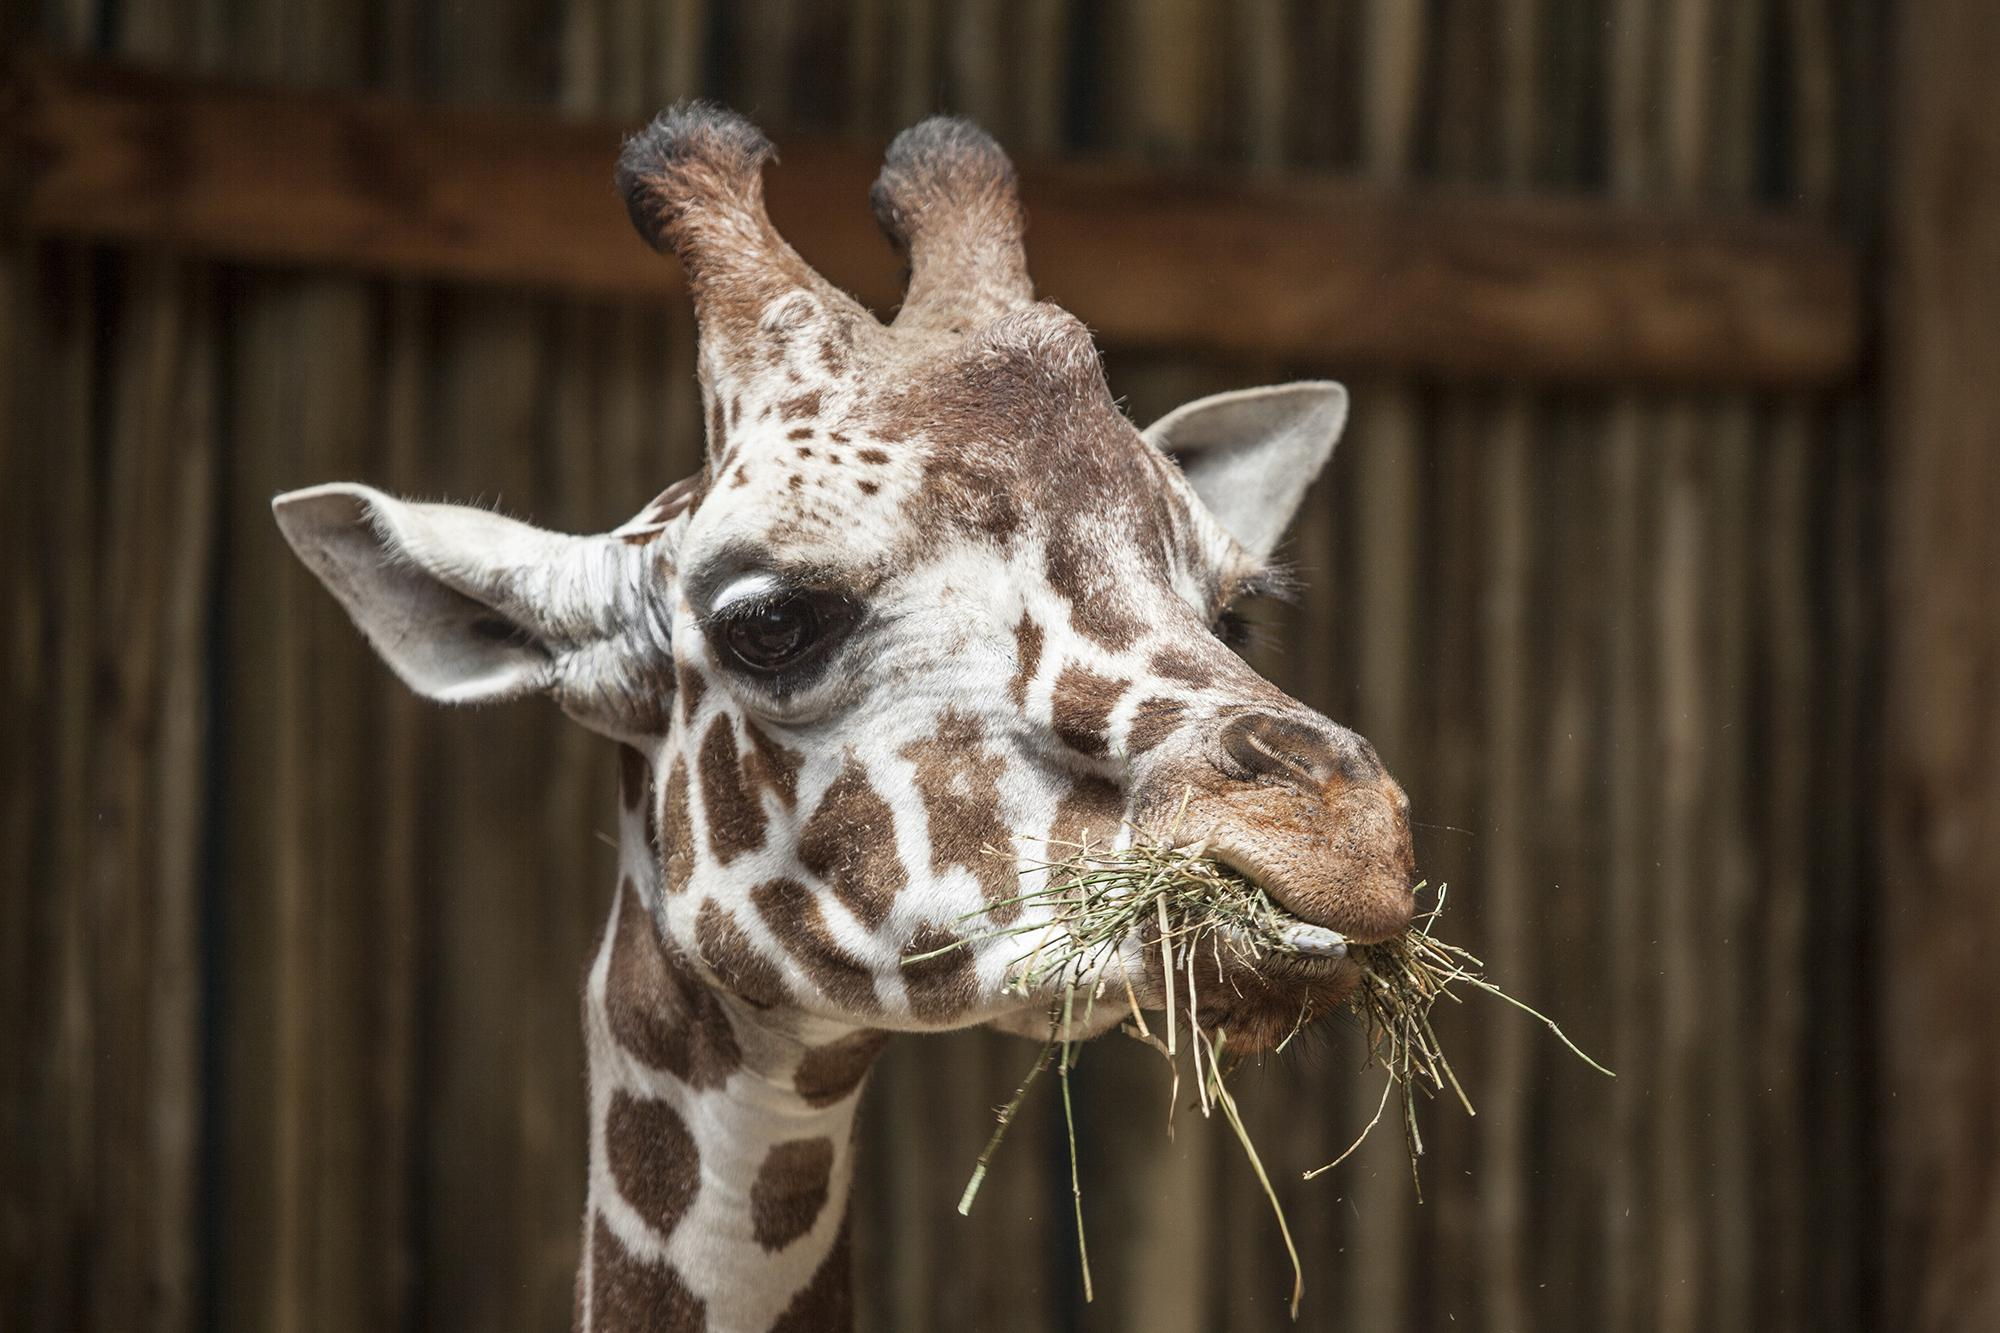 Finely, a 2-year-old giraffe at Lincoln Park Zoo (Chris Bijalba / Lincoln Park Zoo)